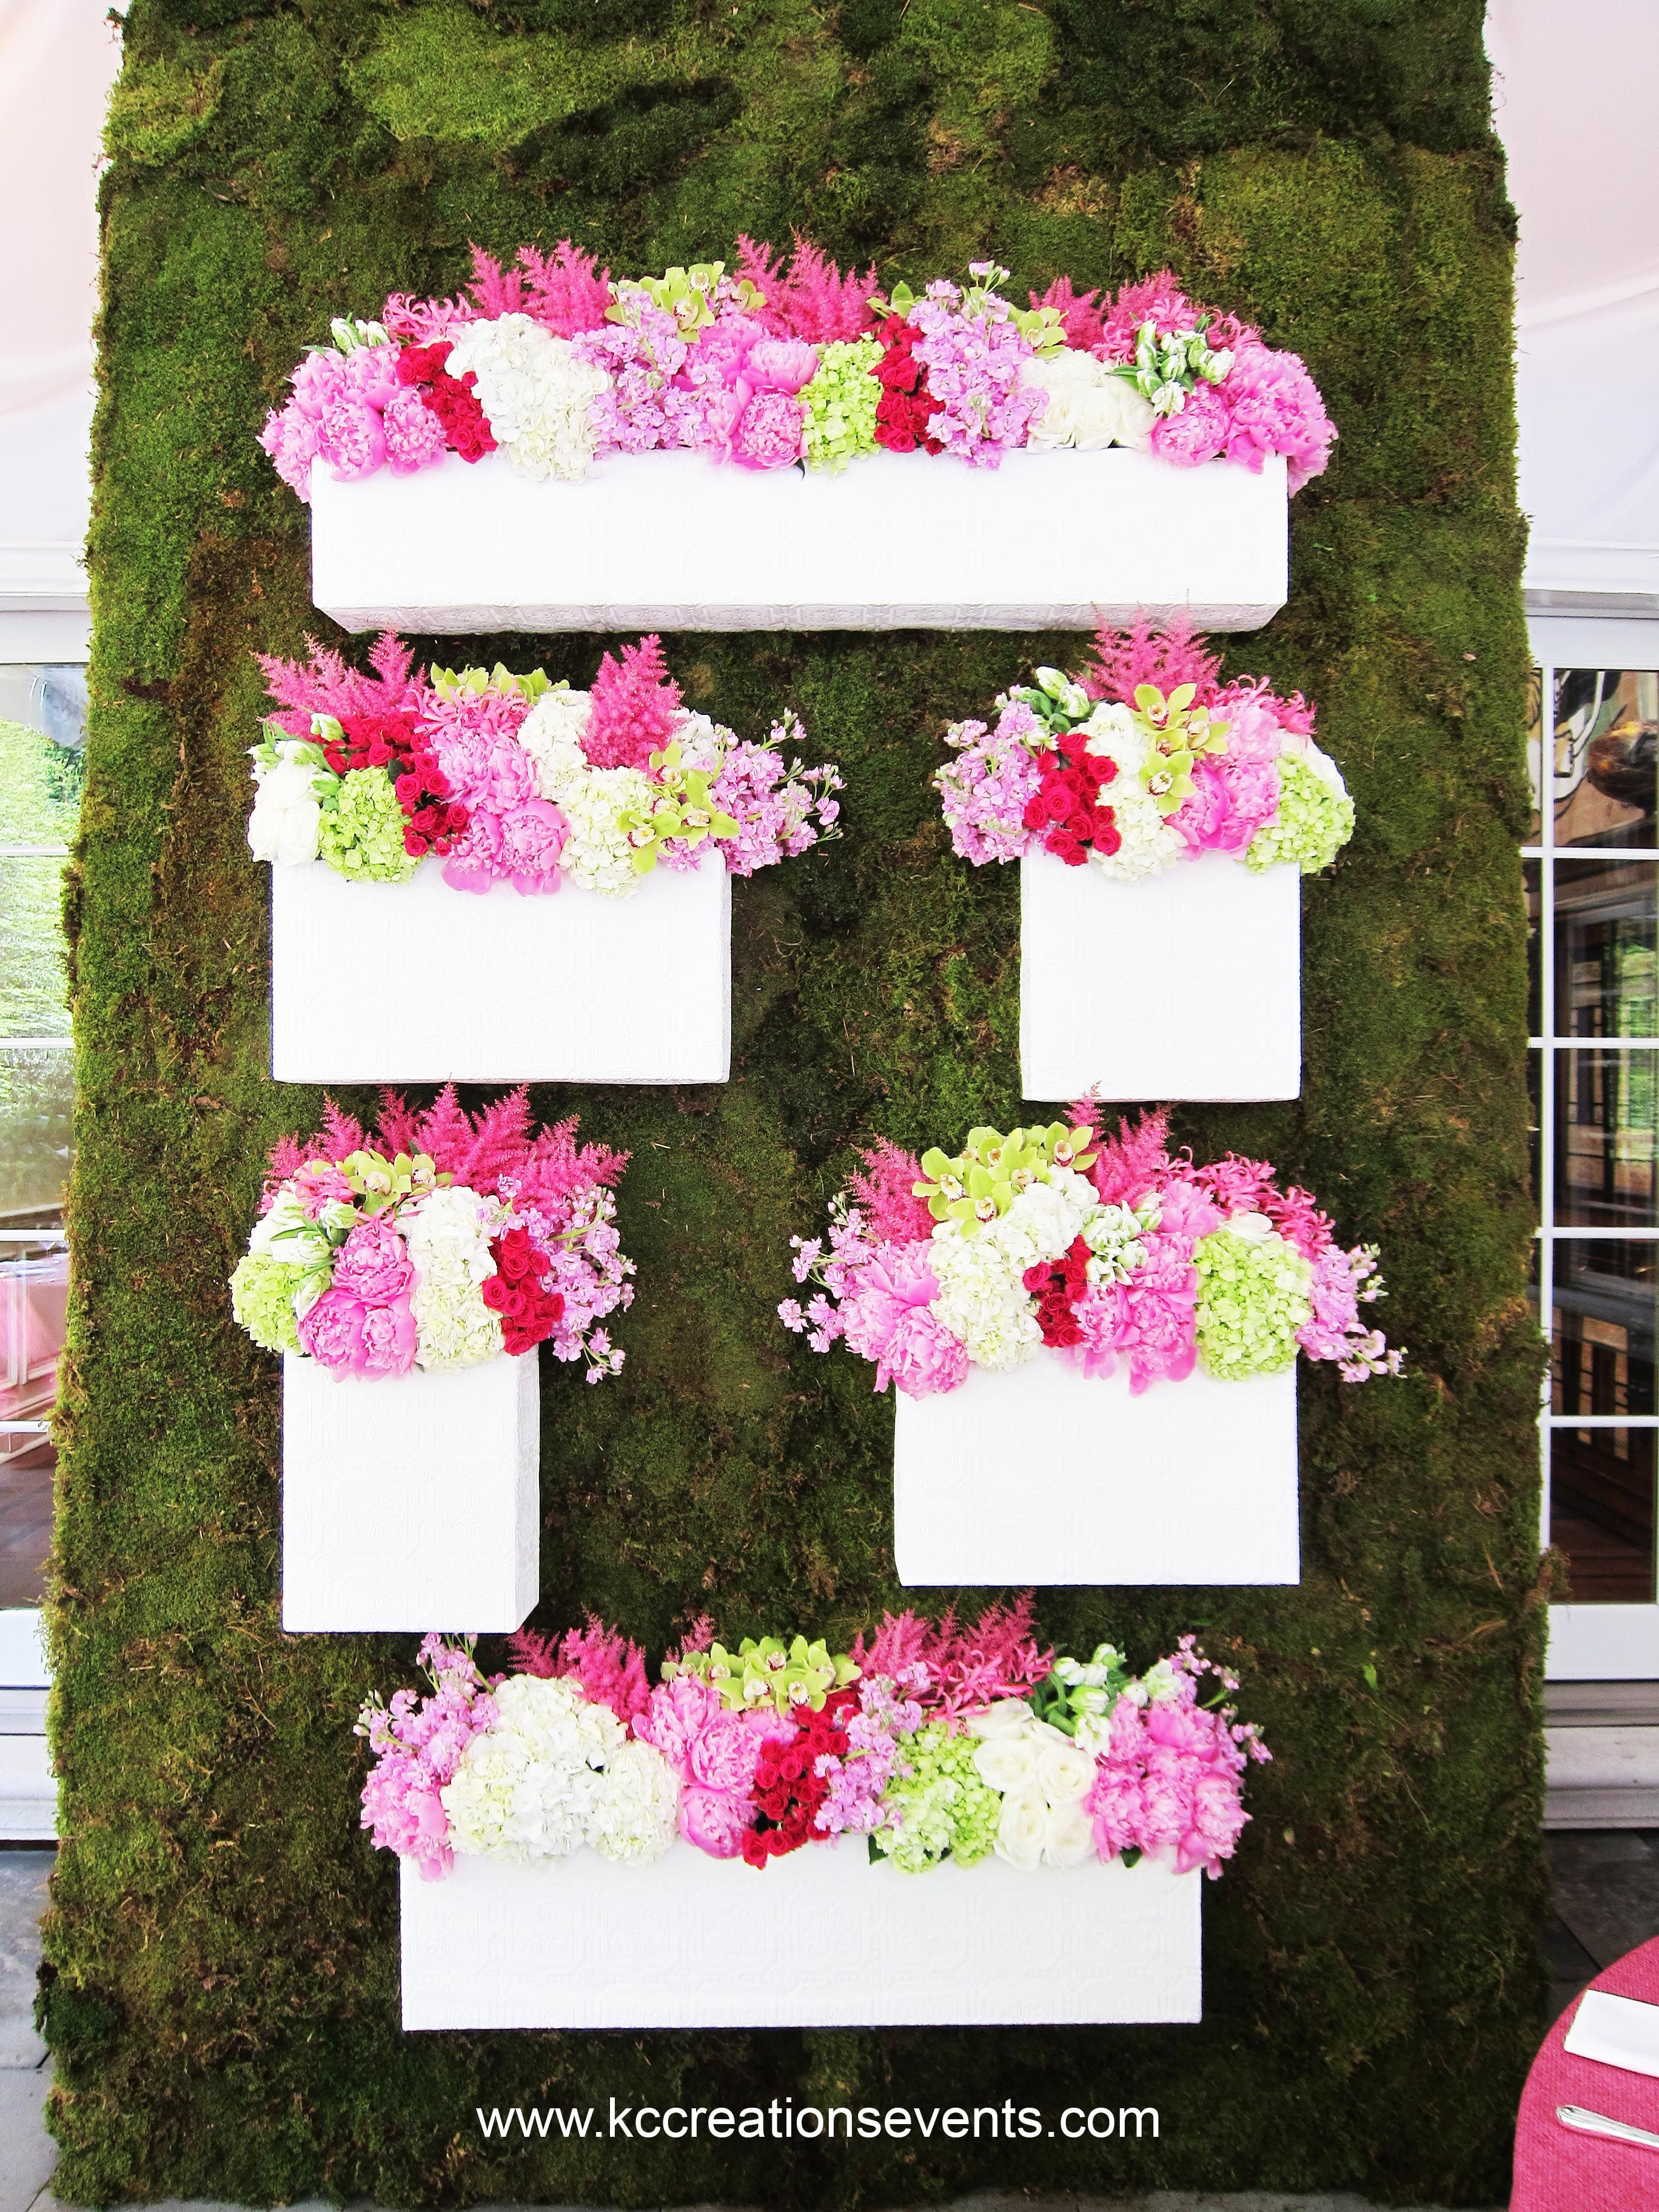 Pink Flowers Wall Of Flowersceremony Backdrop Tent Party Moss